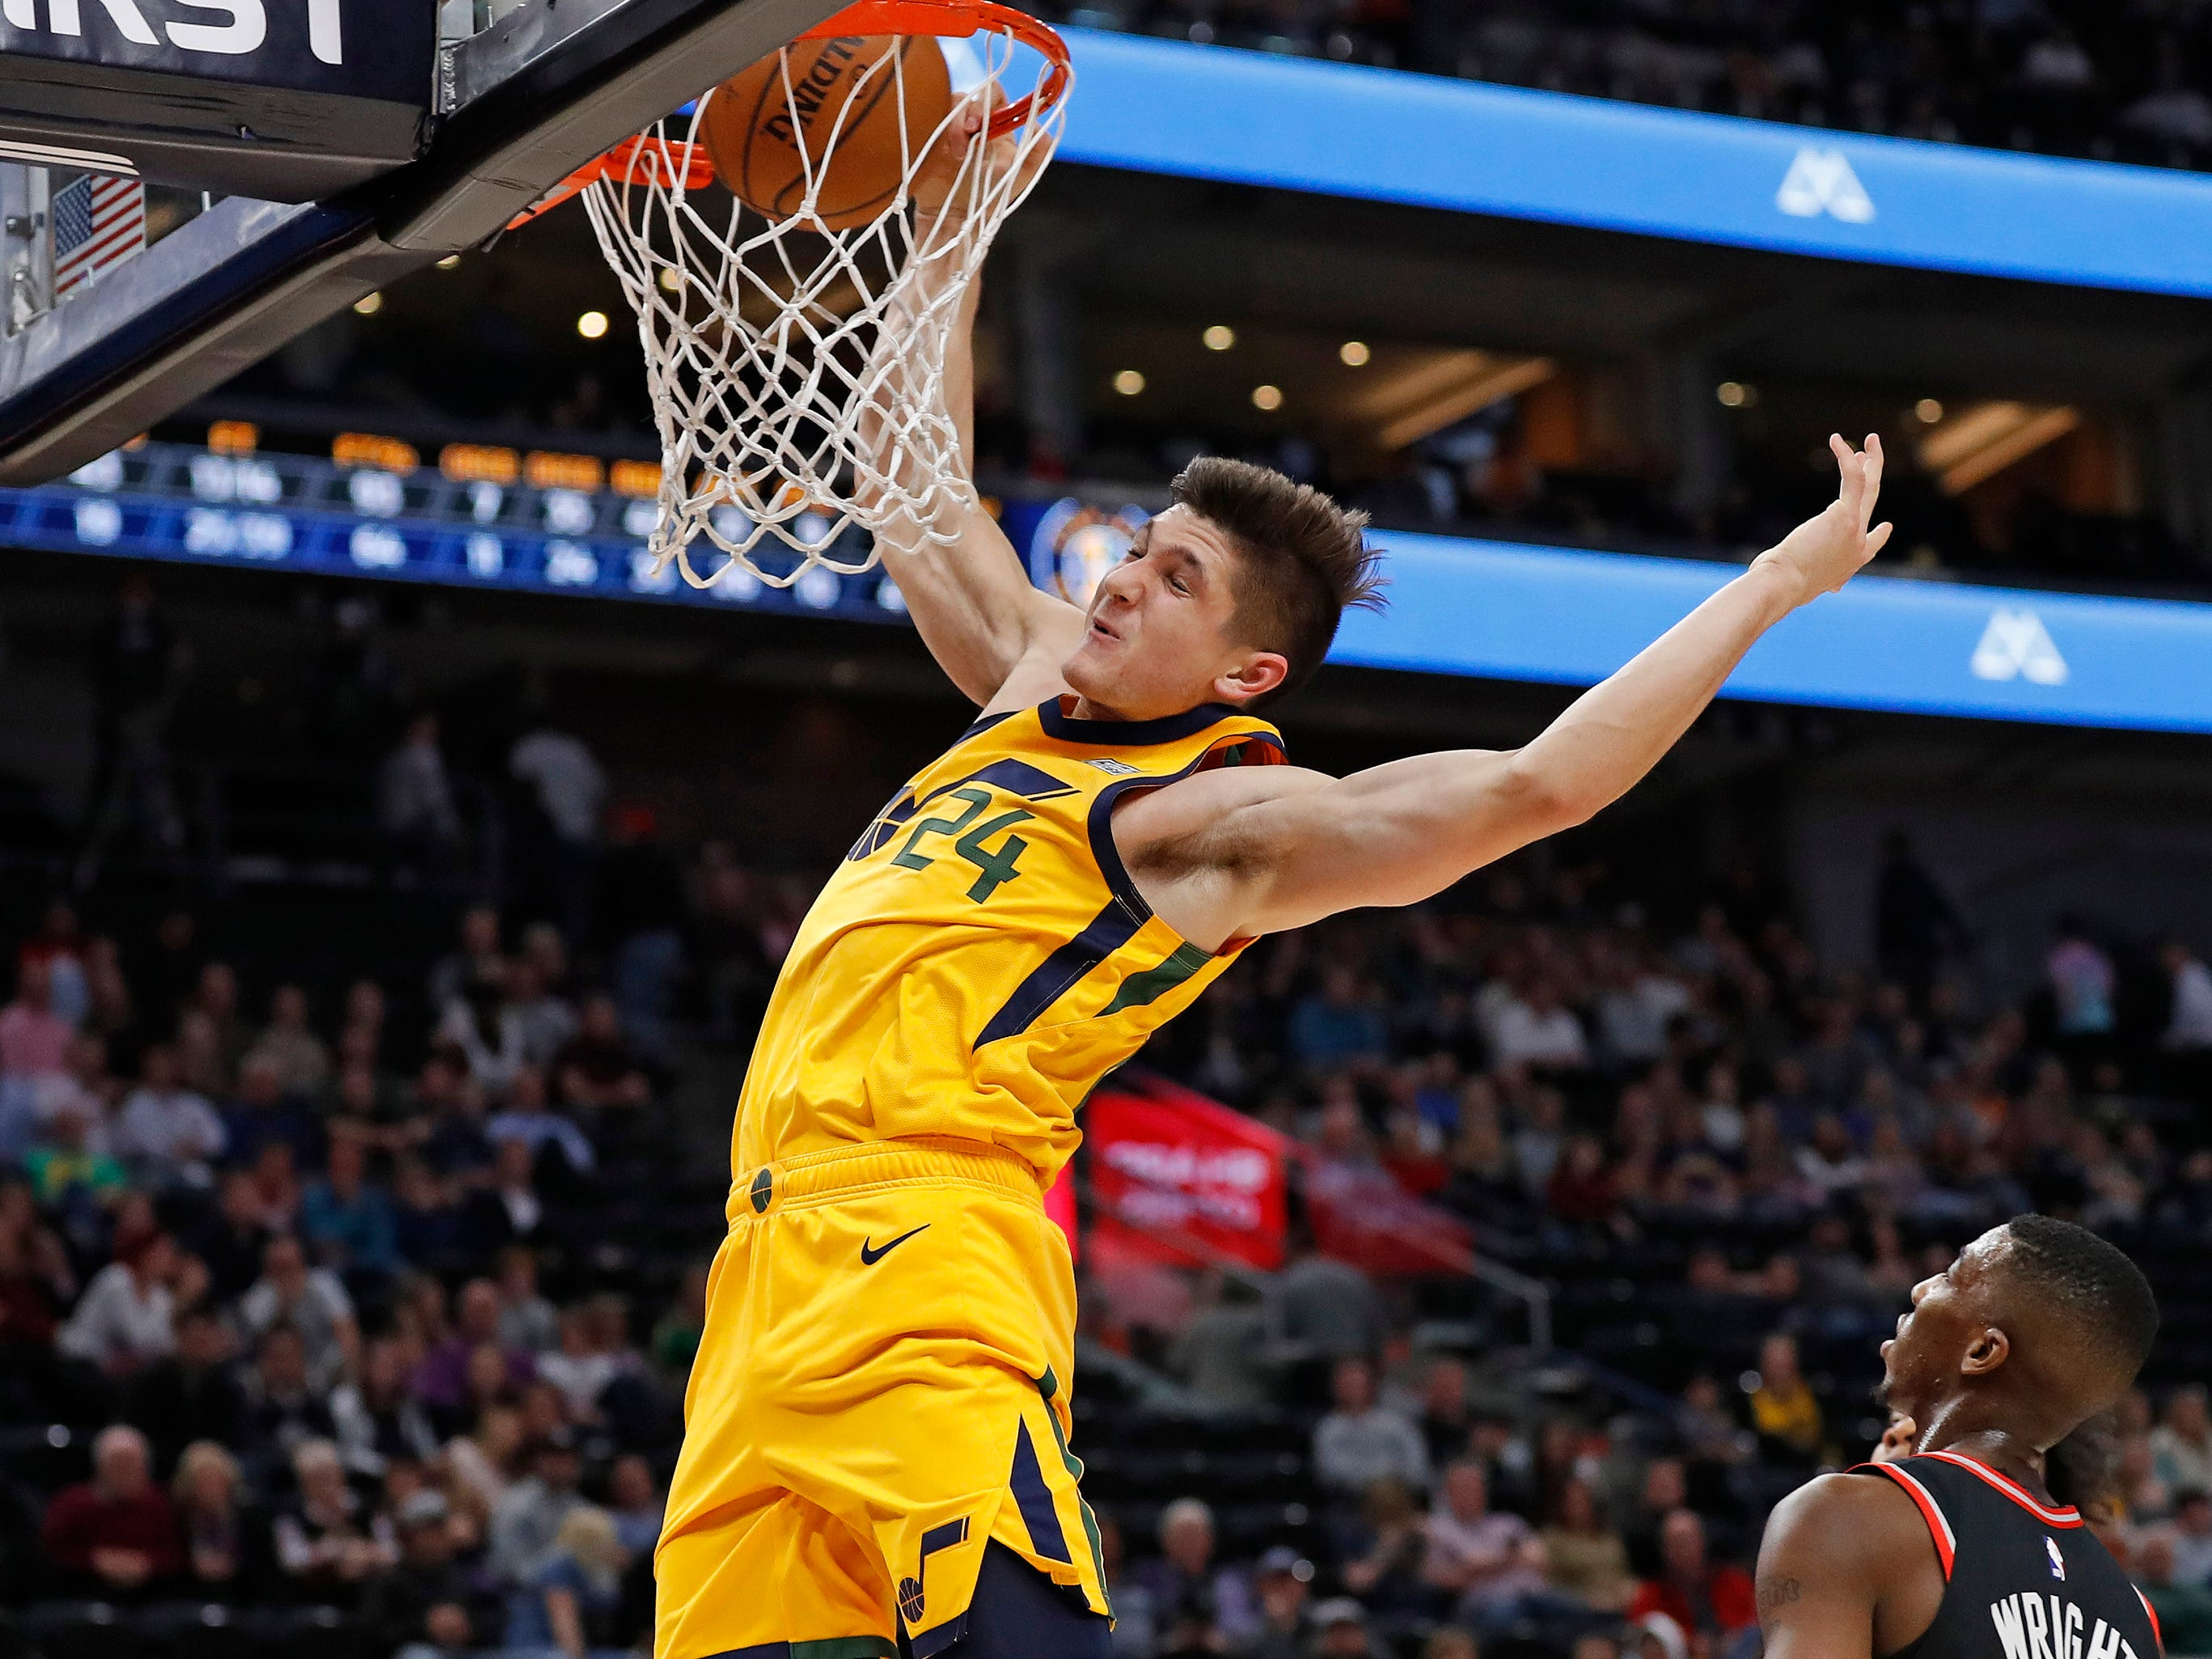 Nov. 5: Jazz guard Grayson Allen puts down a one-handed dunk during the fourth quarter against the Raptors in Salt Lake City.